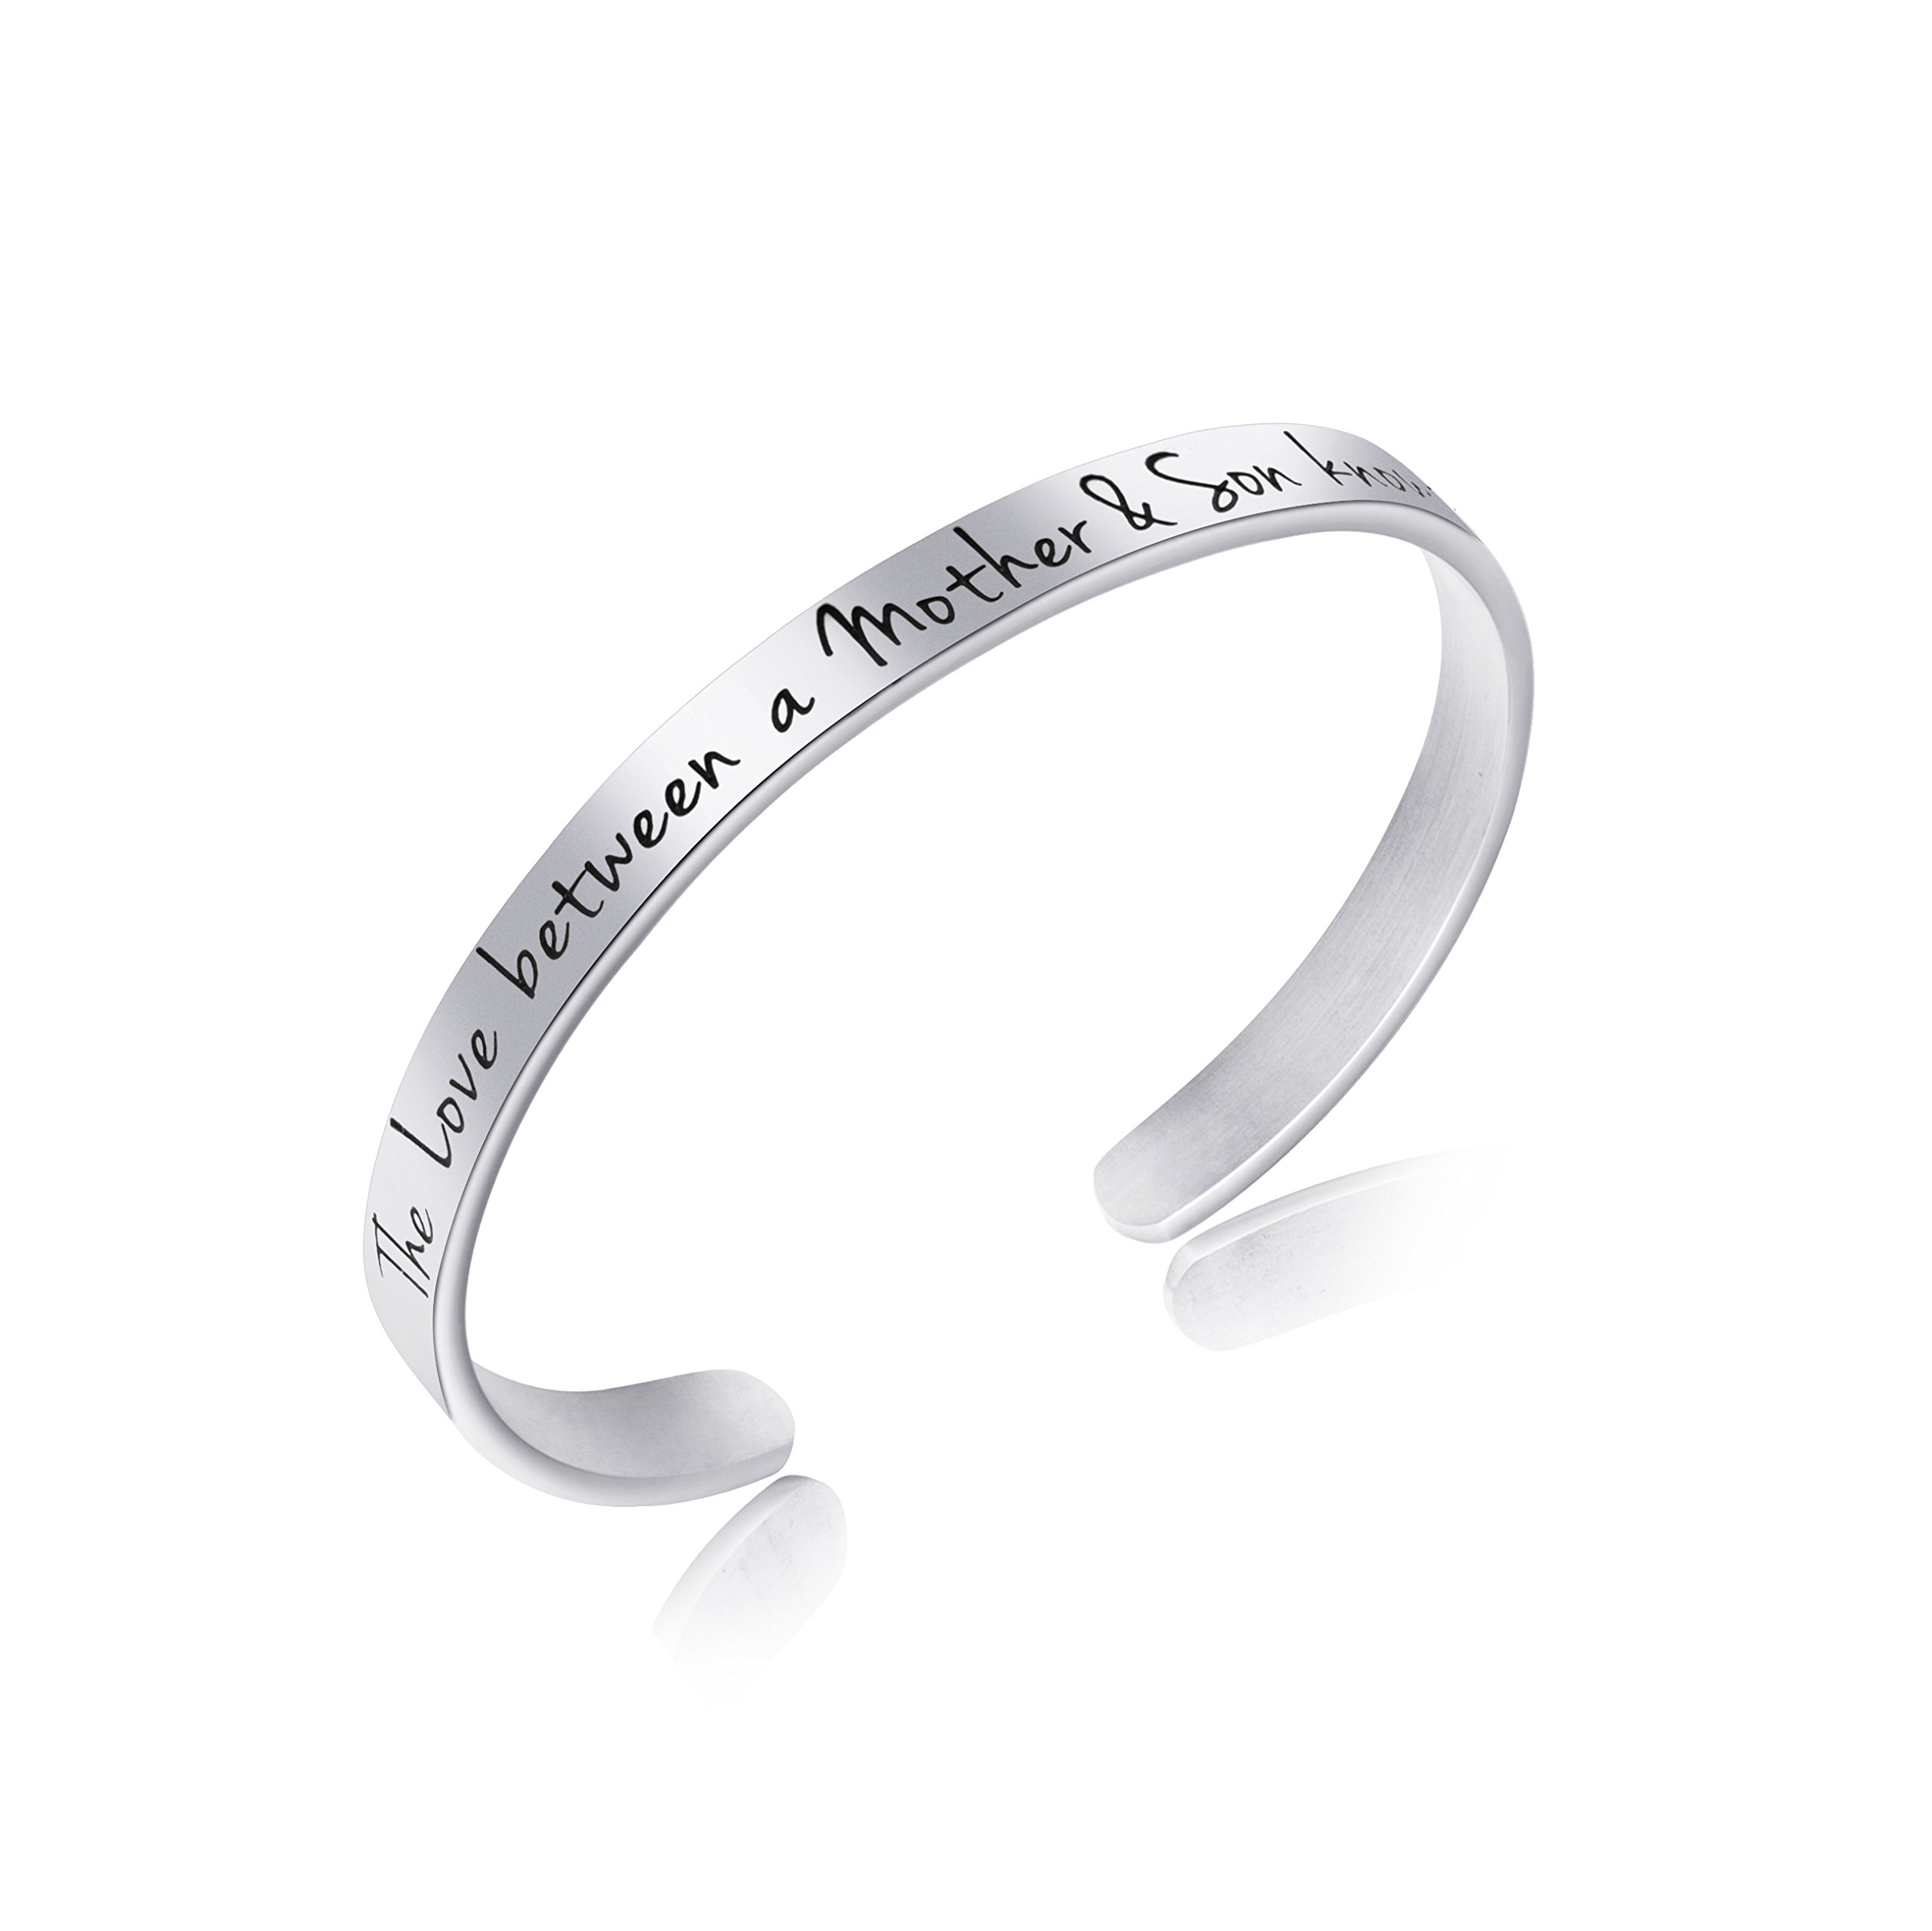 Awegift from Son Cuff Bracelet Engraved Personalized Stainless Steel Bangle Long Distance Gifts The love between a mother son knows no distance